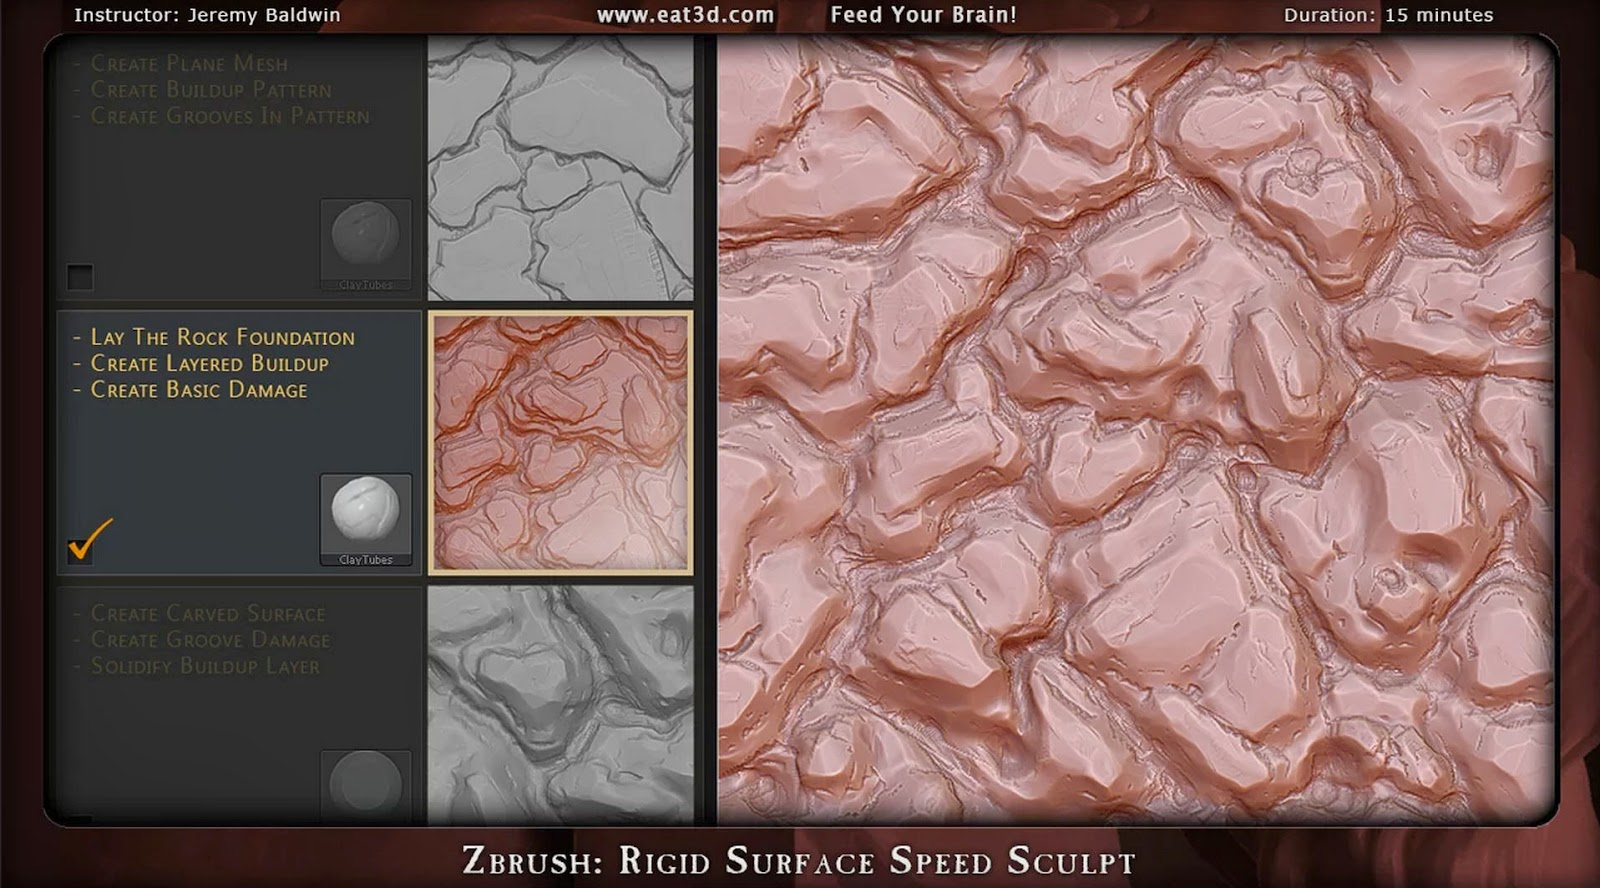 Rigid Surface Speed Sculpt in Zbrush | CG TUTORIAL